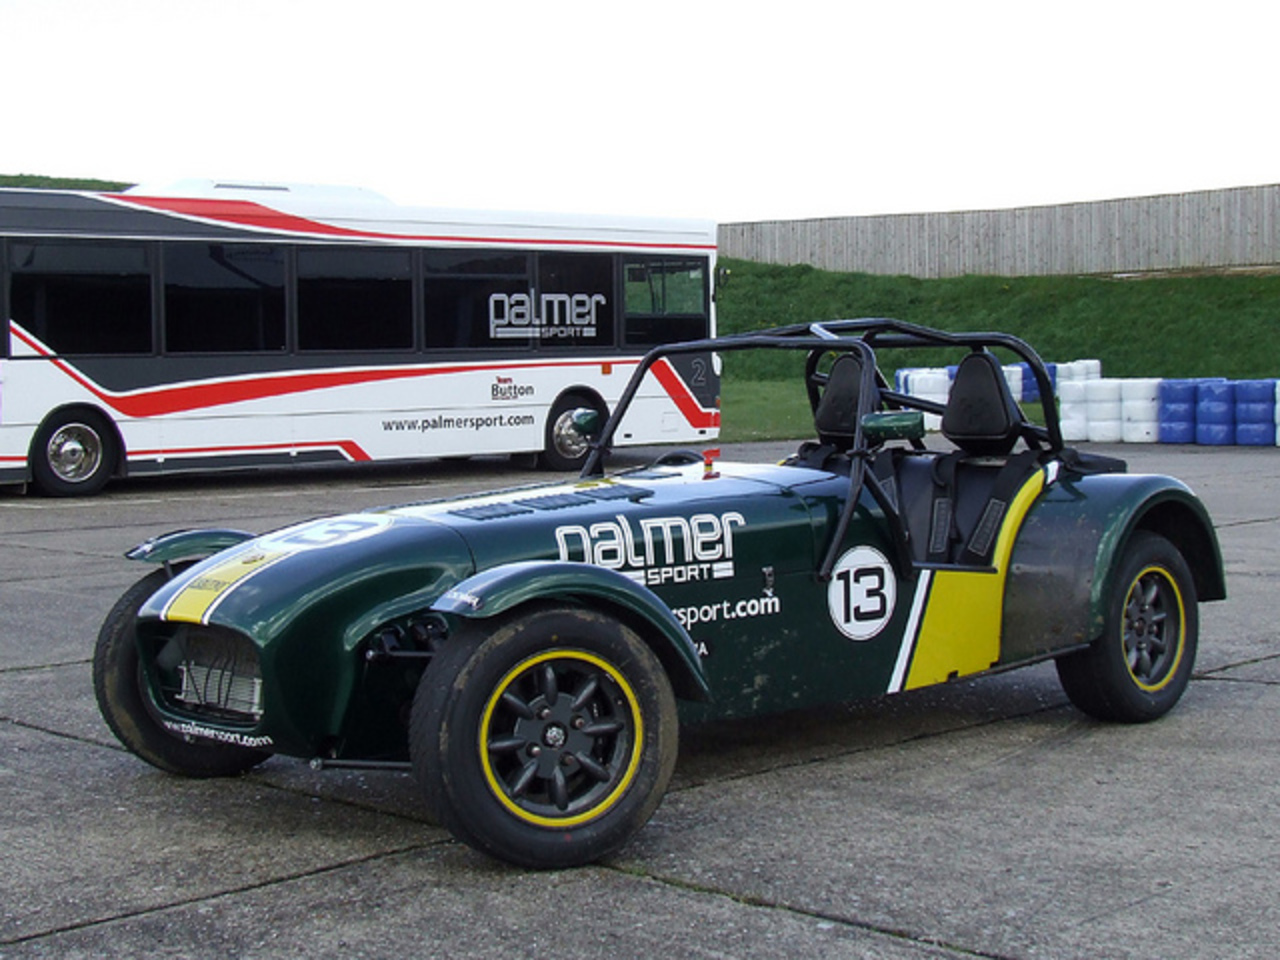 Caterham Seven Superlight - Palmersport - Bedford Autodrome ...